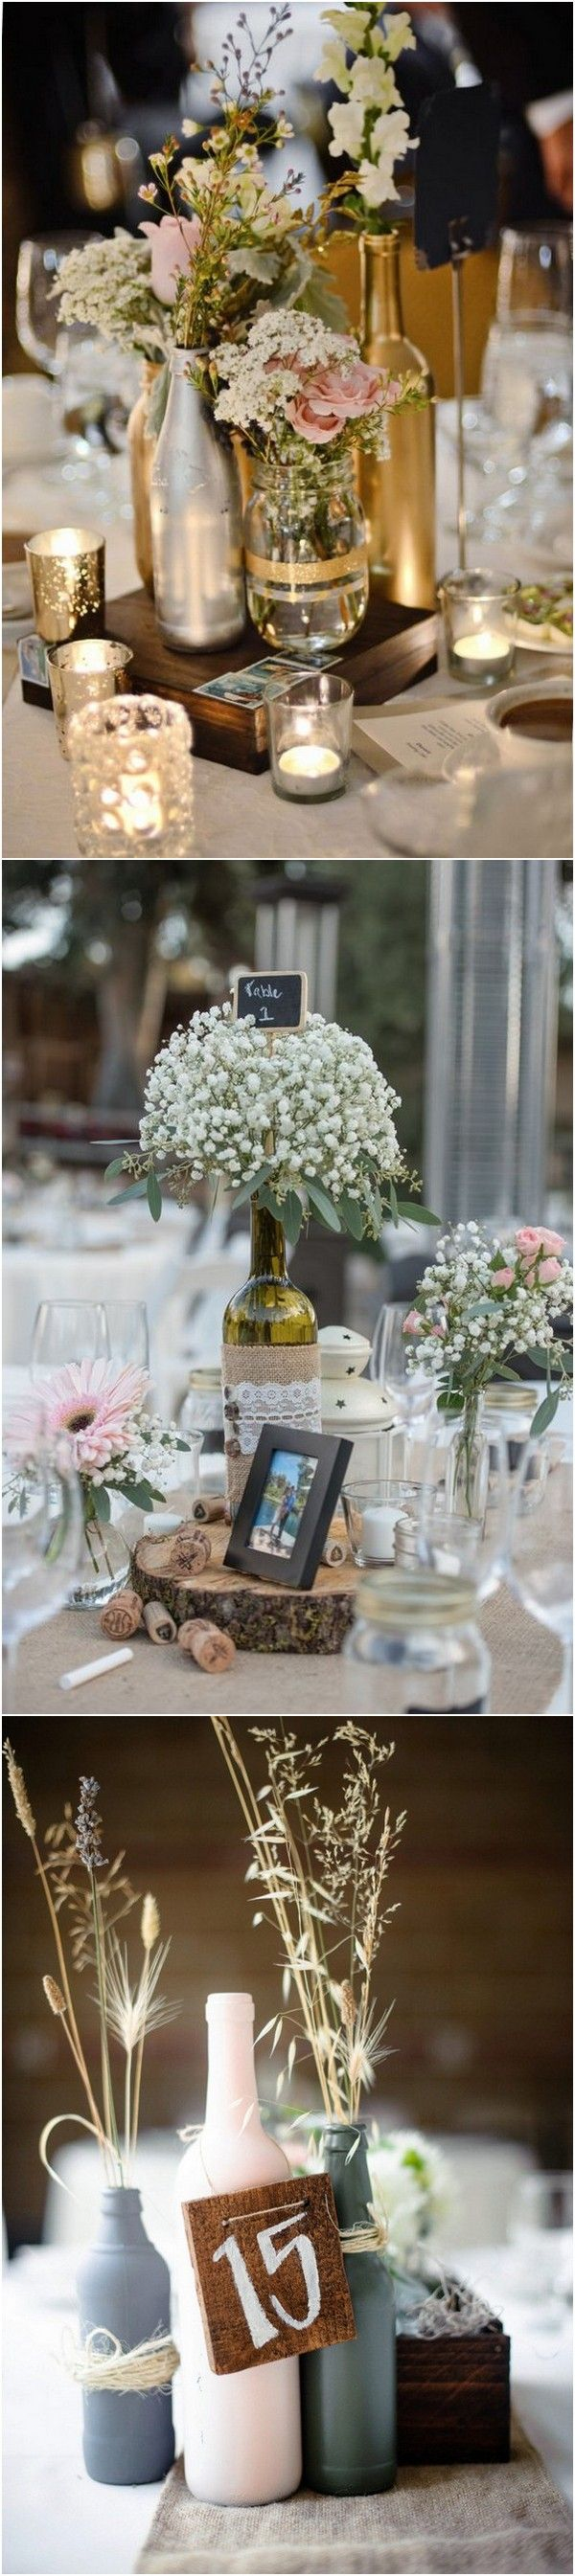 Wedding decoration ideas simple   Creative DIY Wine Bottle Wedding Centerpieces for Your Big Day in